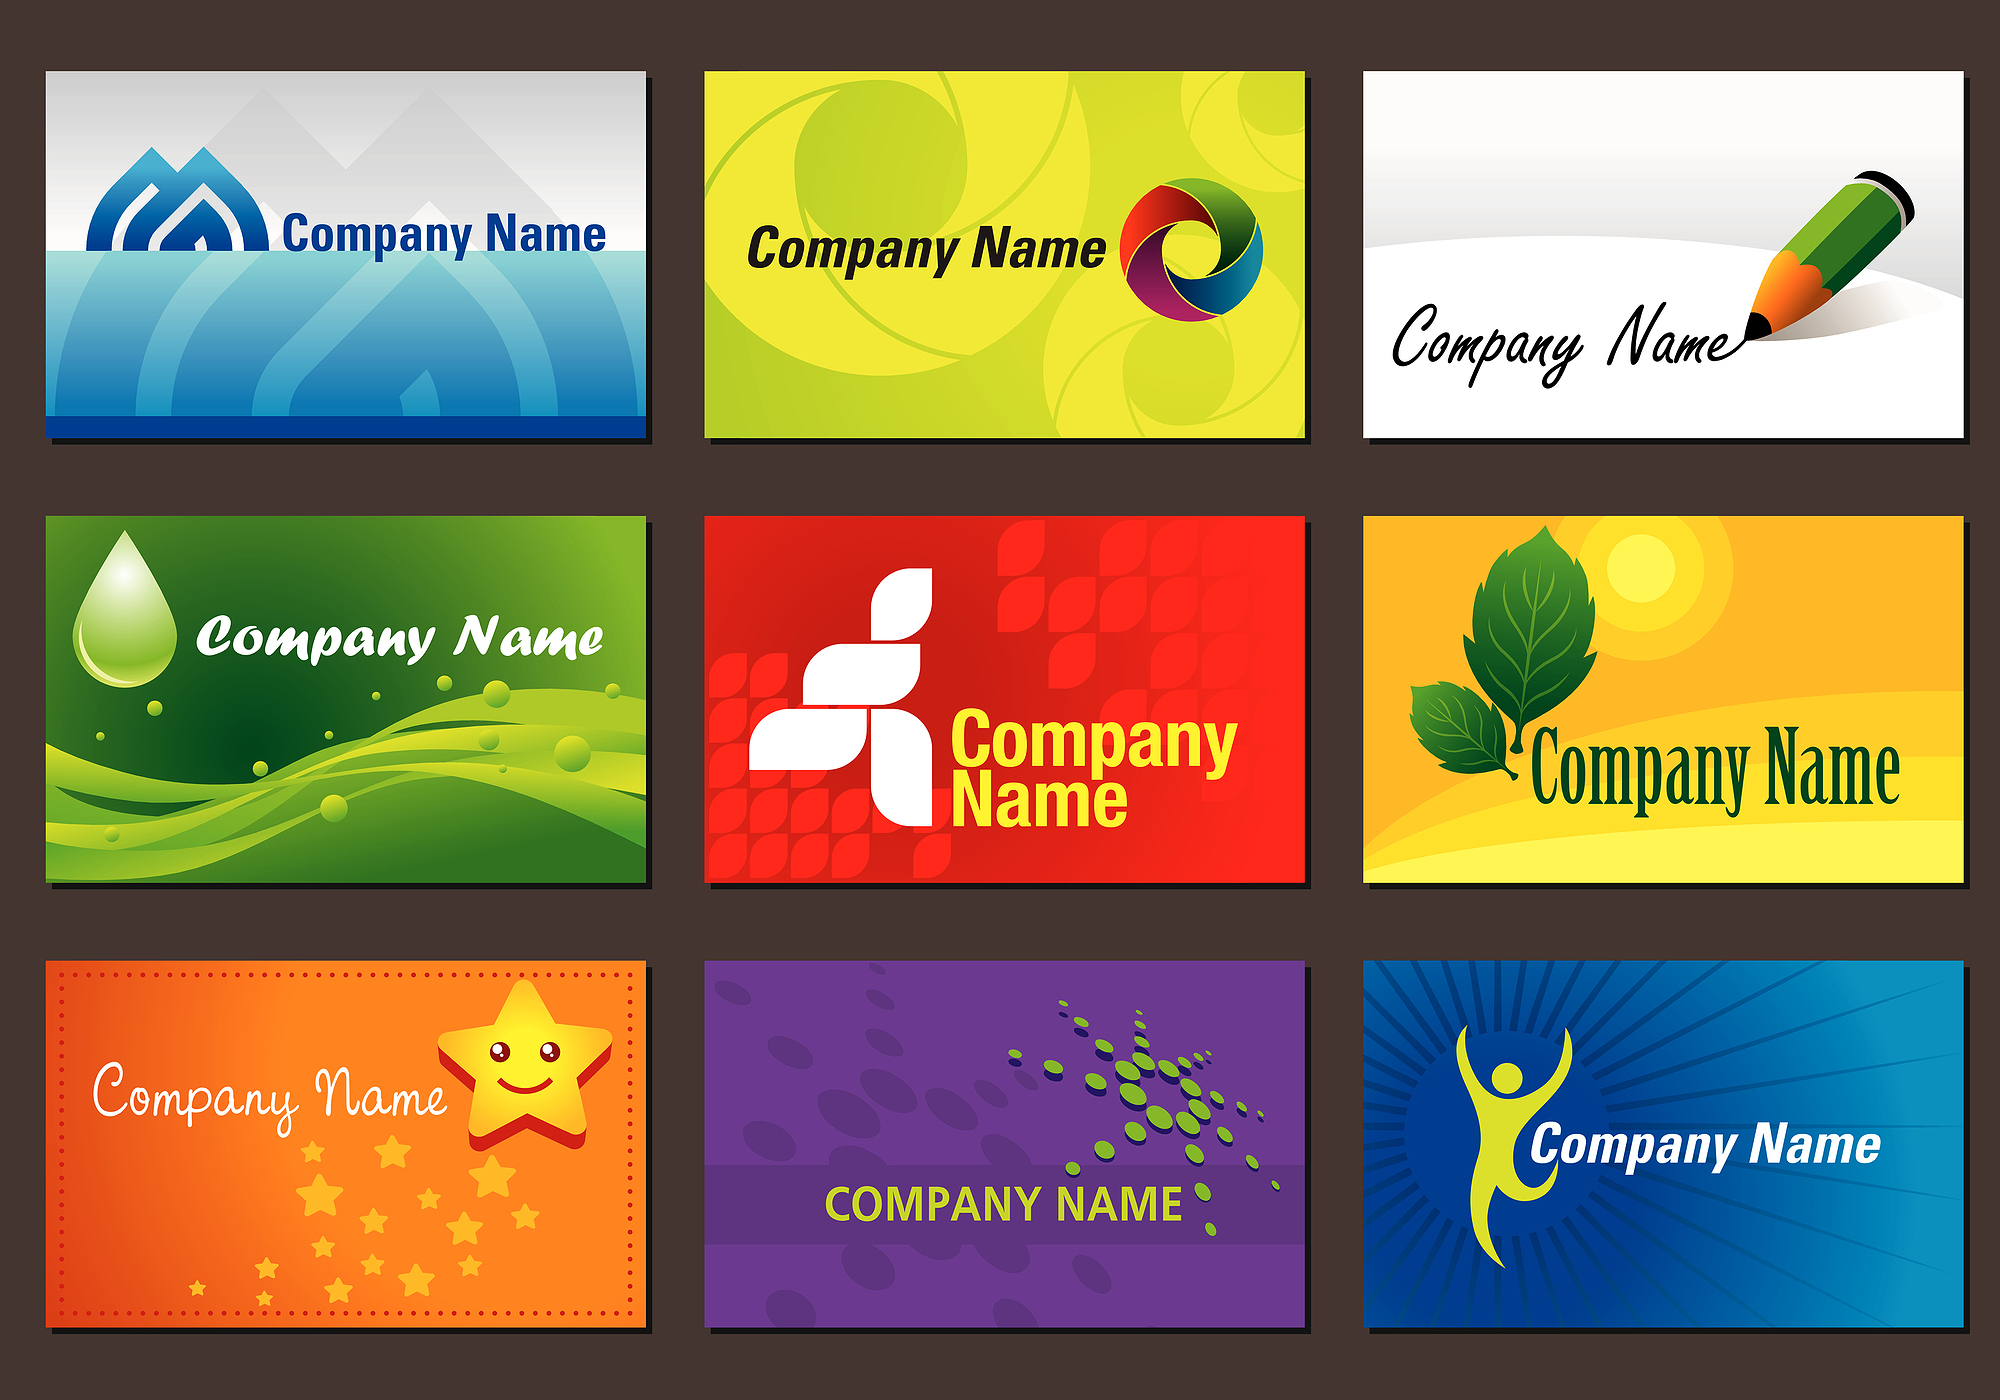 Don't Ignore the Importance of Naming Your Business